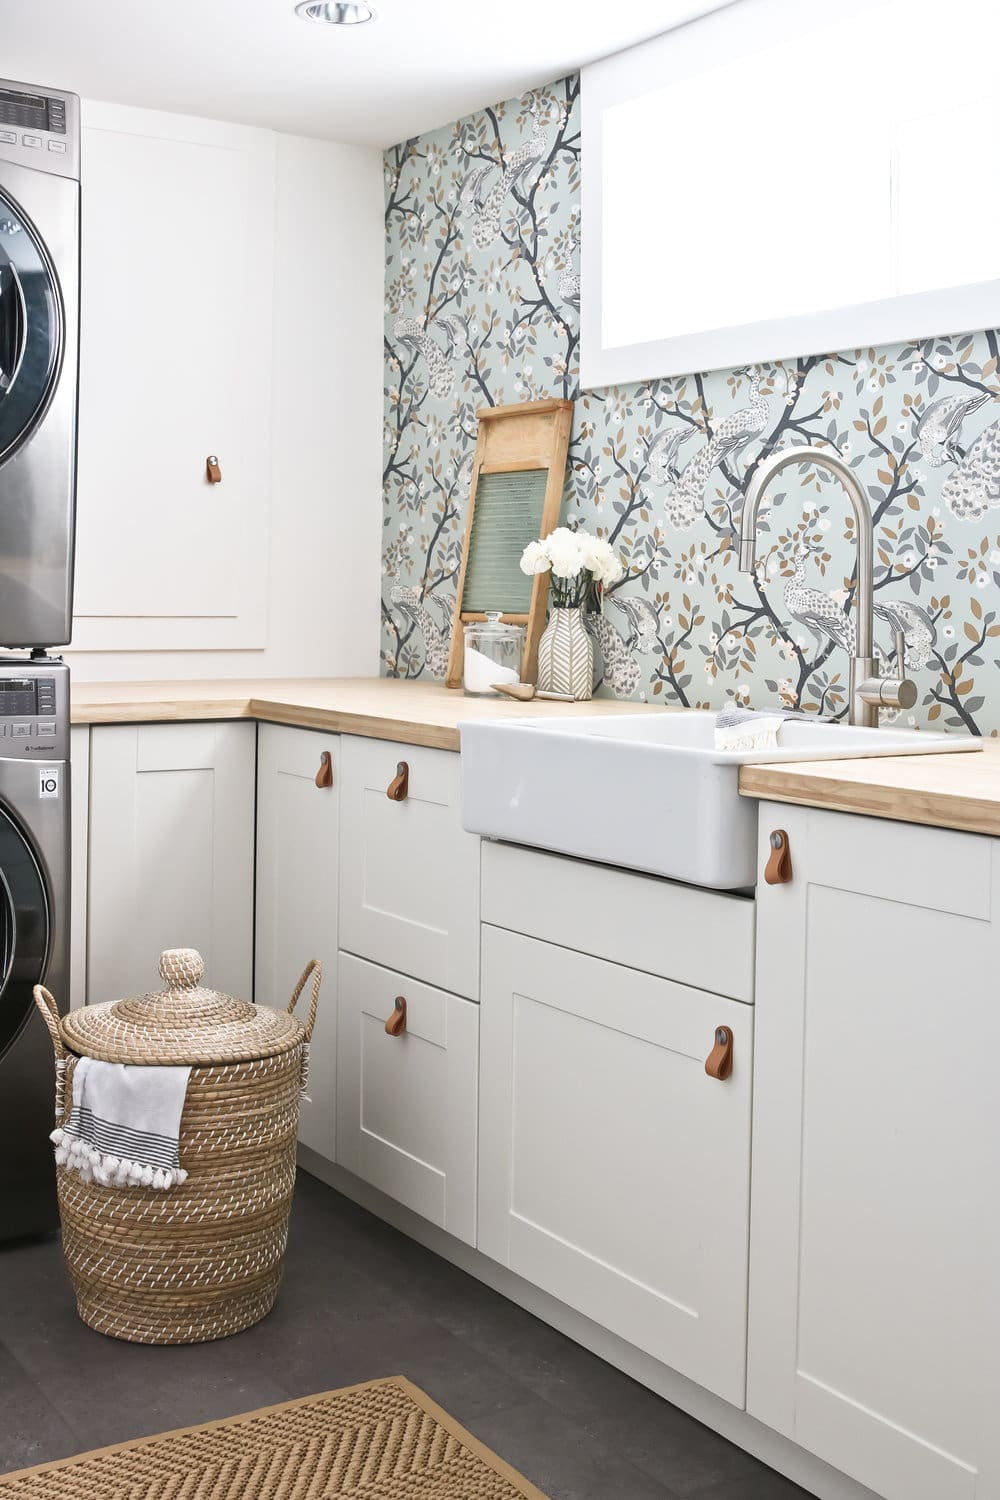 laundry room with floral wallpaper design and leather handles on cabinets